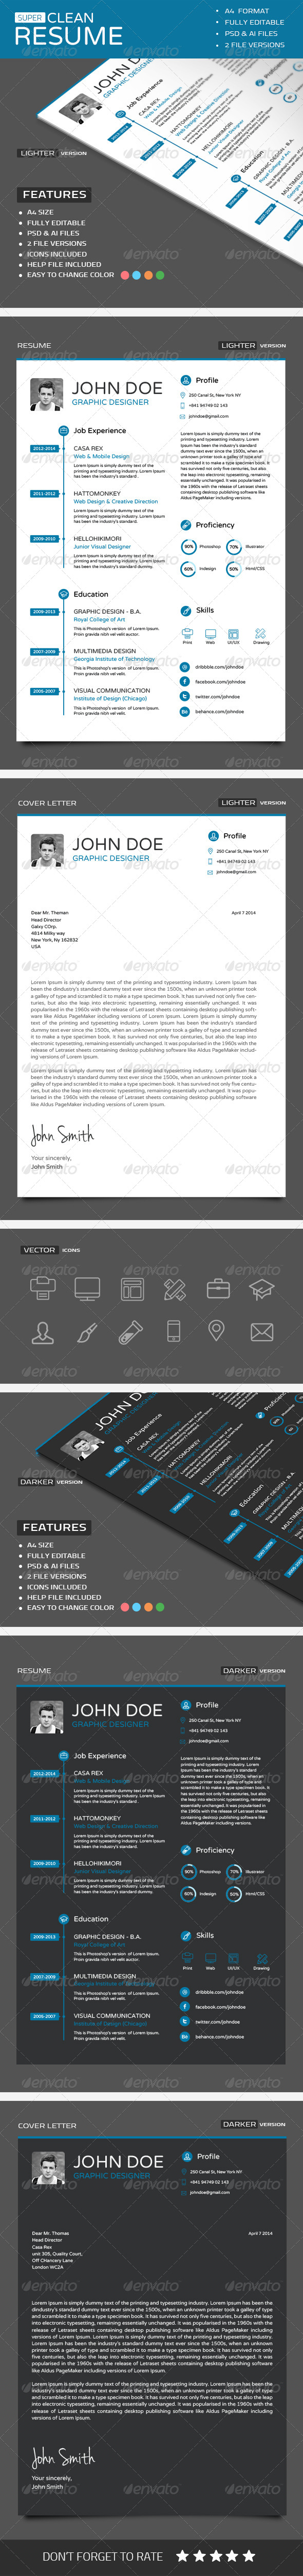 Super Clean Resume - Resumes Stationery